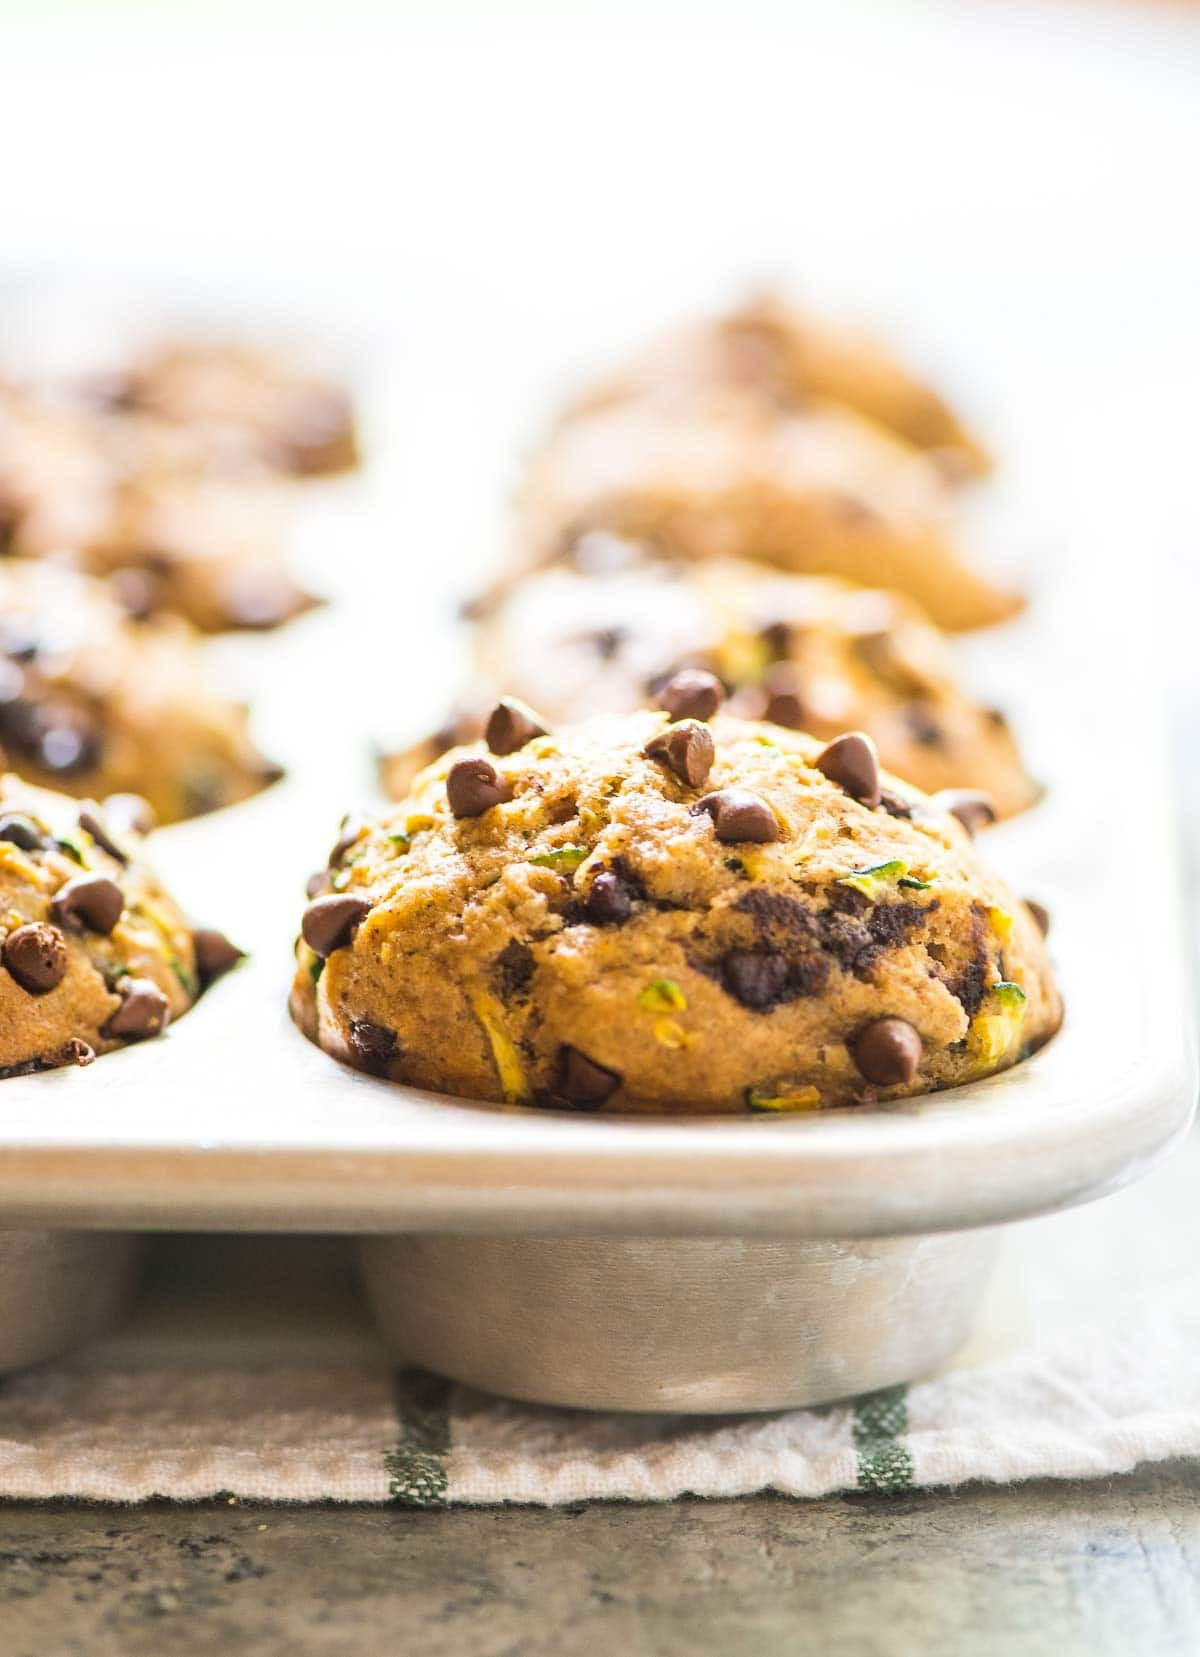 Zucchini Recipe Healthy  Healthy Zucchini Muffins with Chocolate Chips